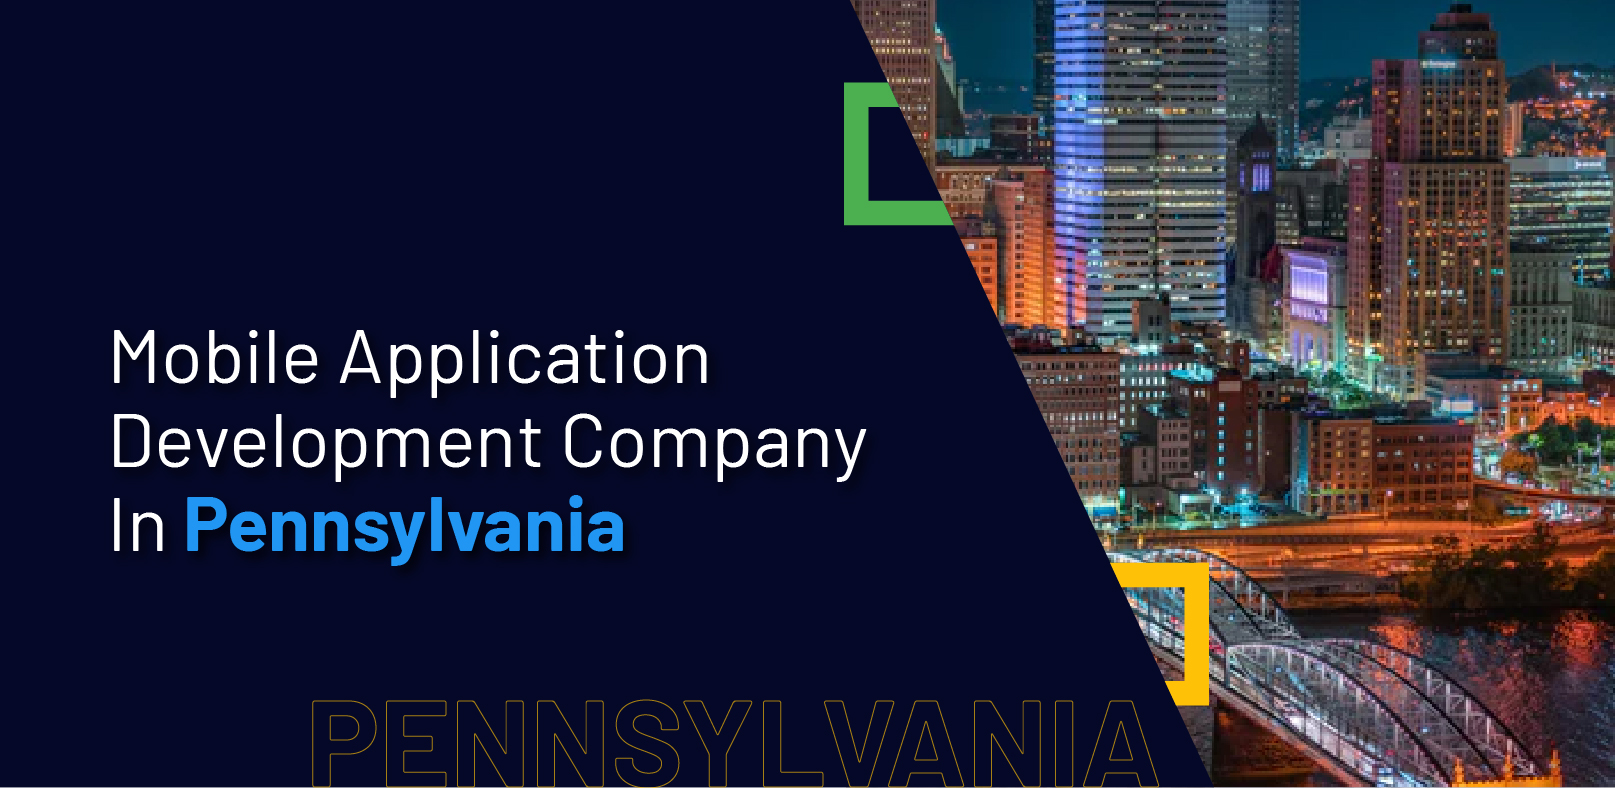 Mobile Application Development in Pennsylvania - WebClues Infotech